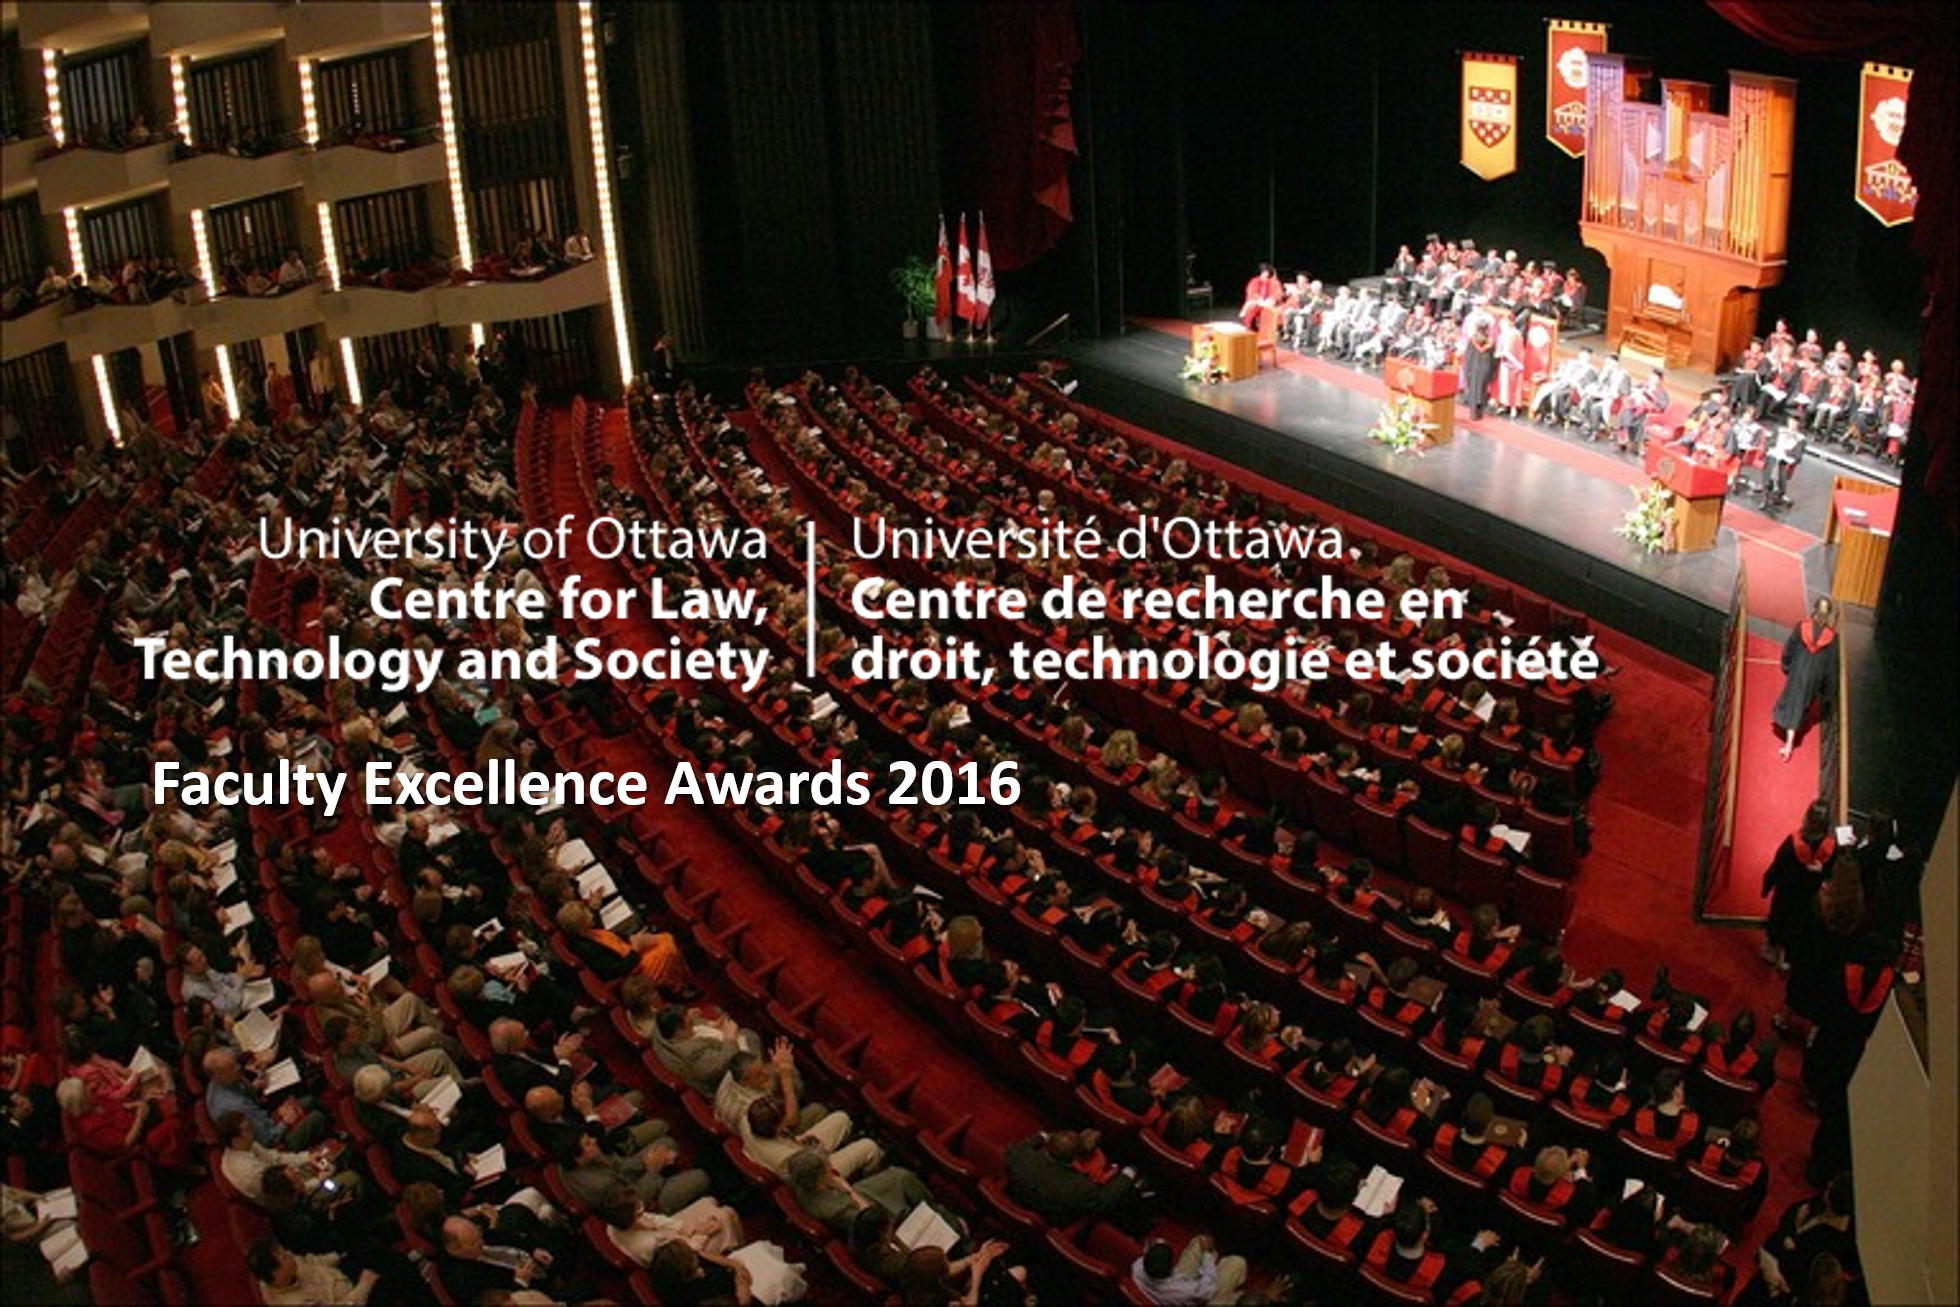 Faculty Excellence Awards 2016